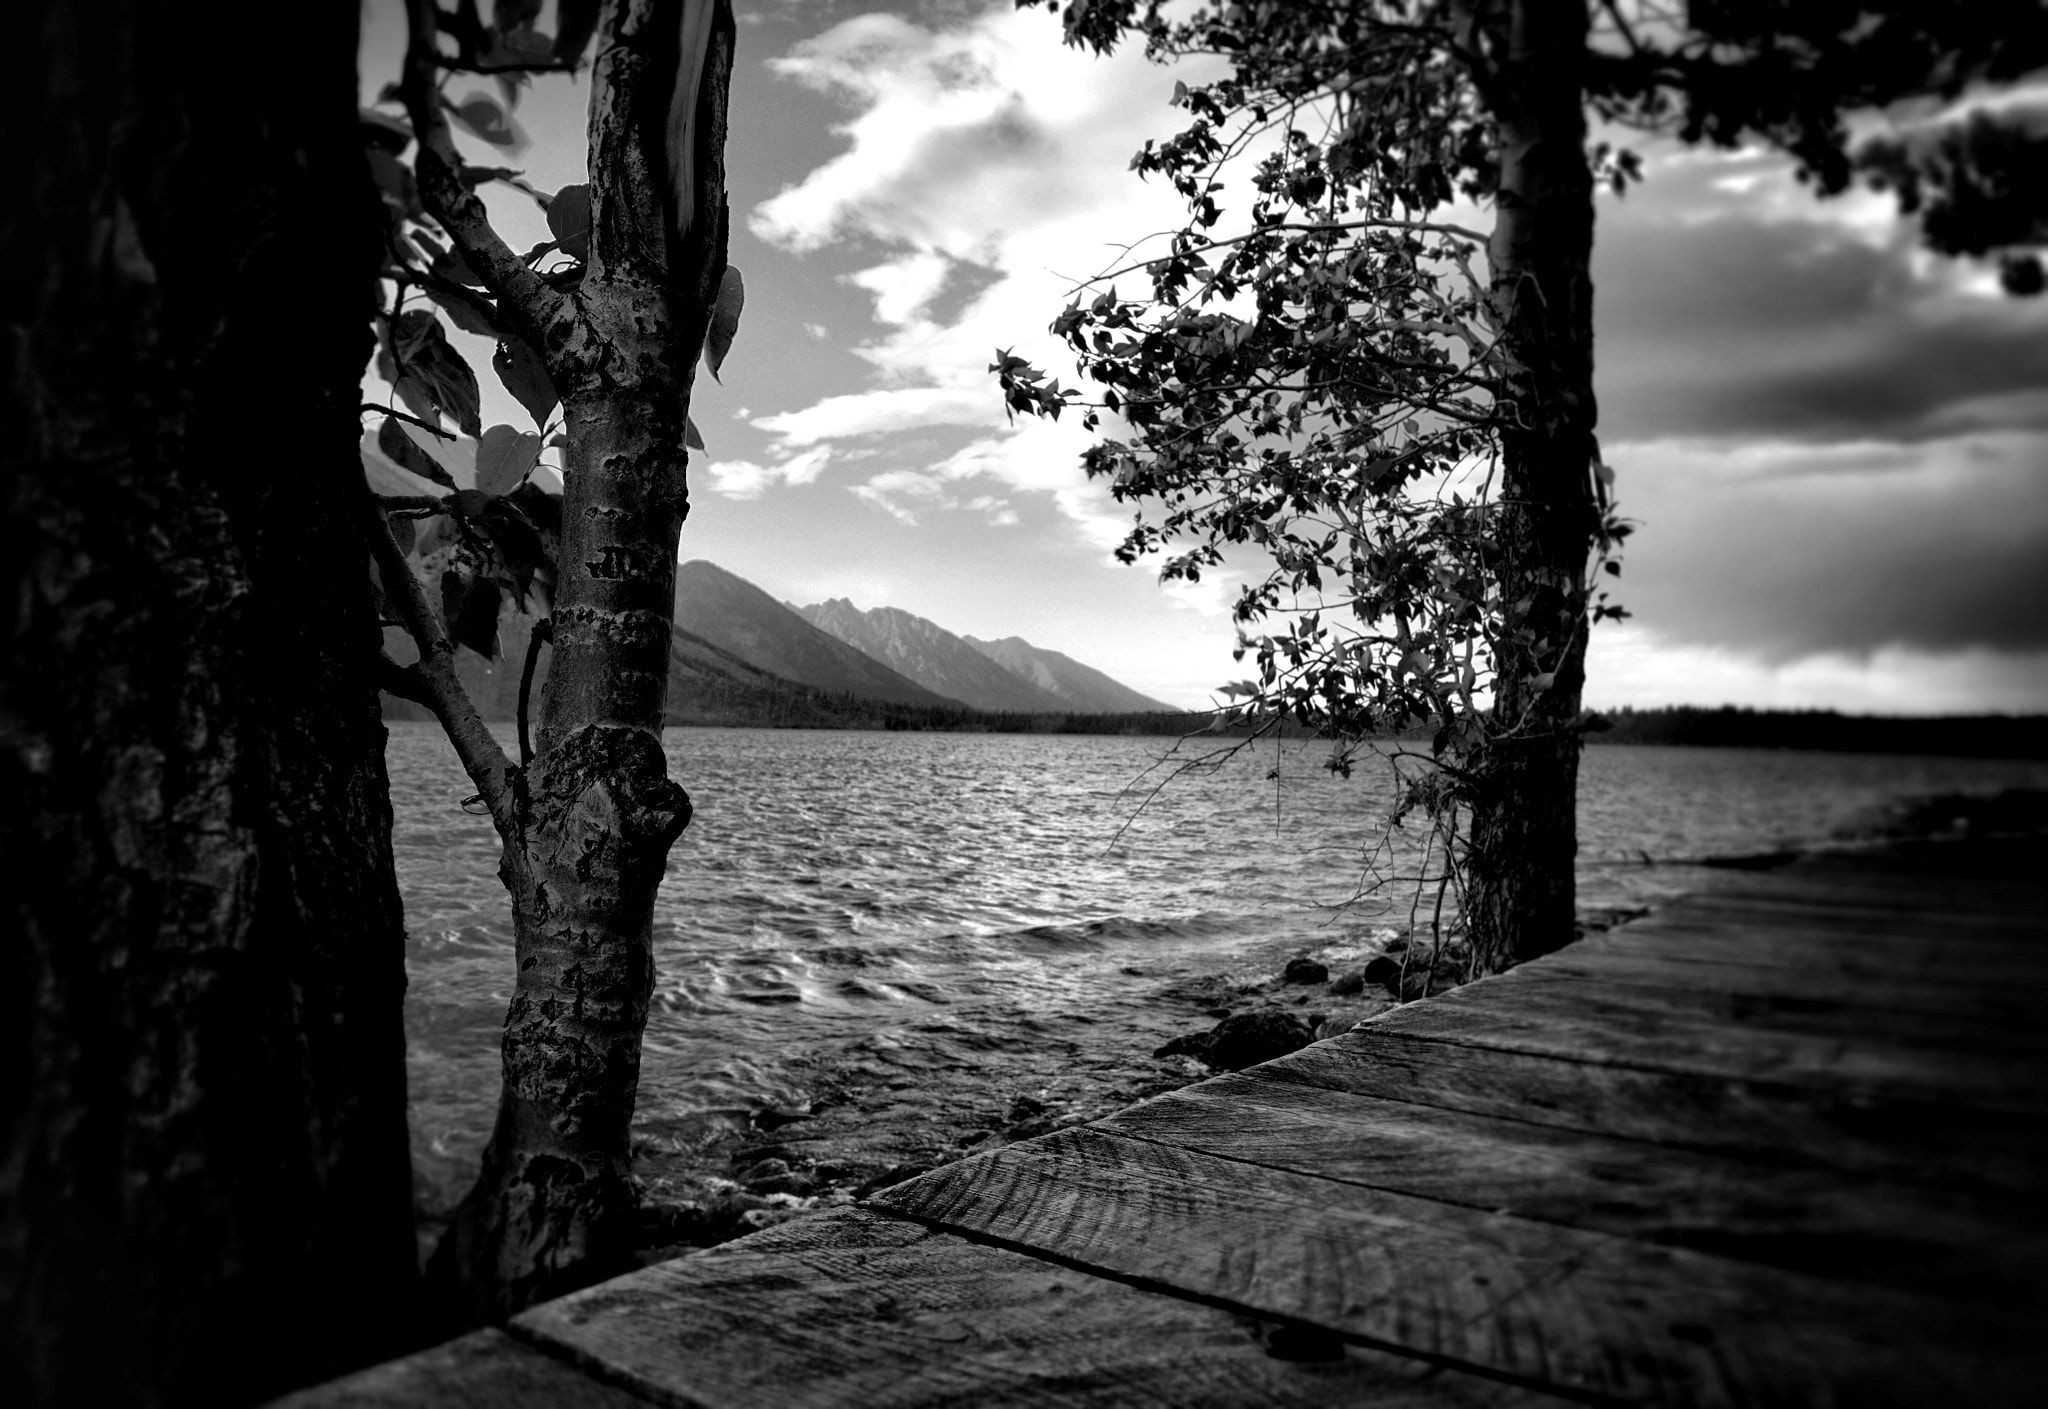 Photograph Jenny Lake from Boat House by Kindra Martinenko on 500px